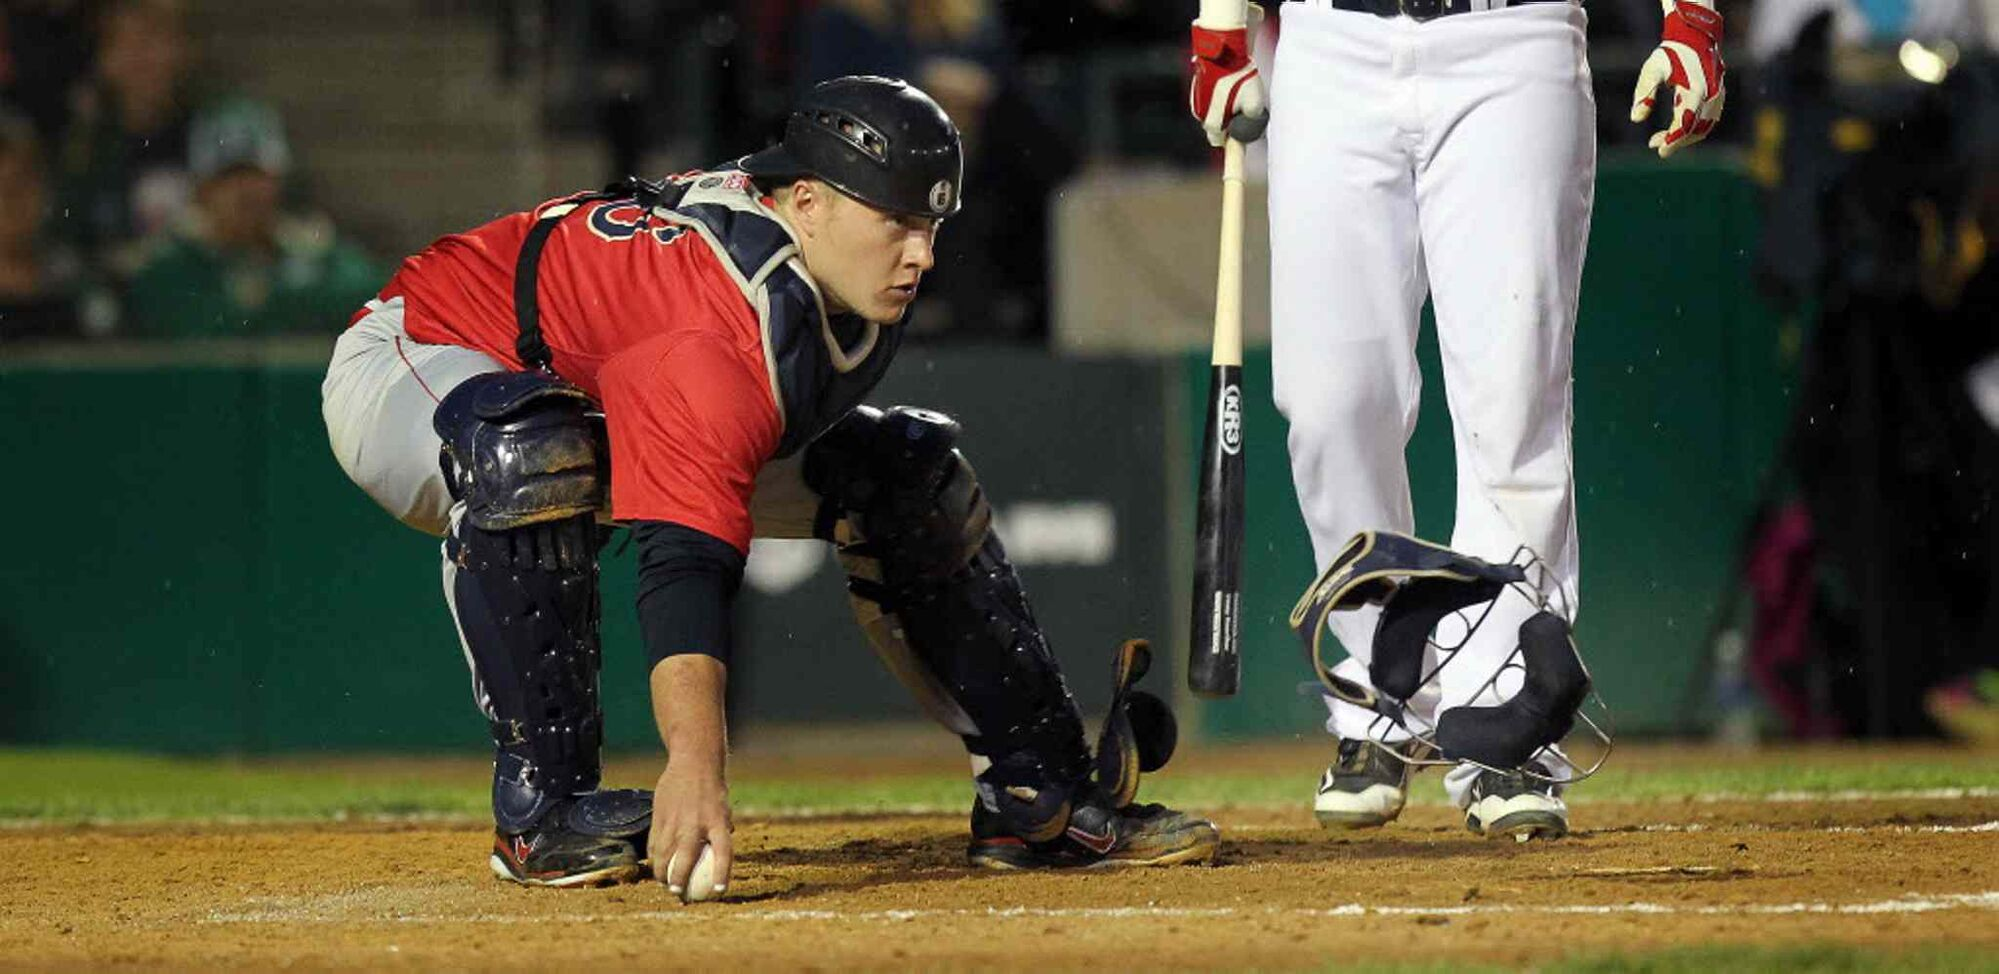 Lincoln Saltdogs' catcher Tyler Smith corrals a foul ball in the bottom of the third inning while keeping an eye on Goldeyes runners. (Phil Hossack / Winnipeg Free Press)